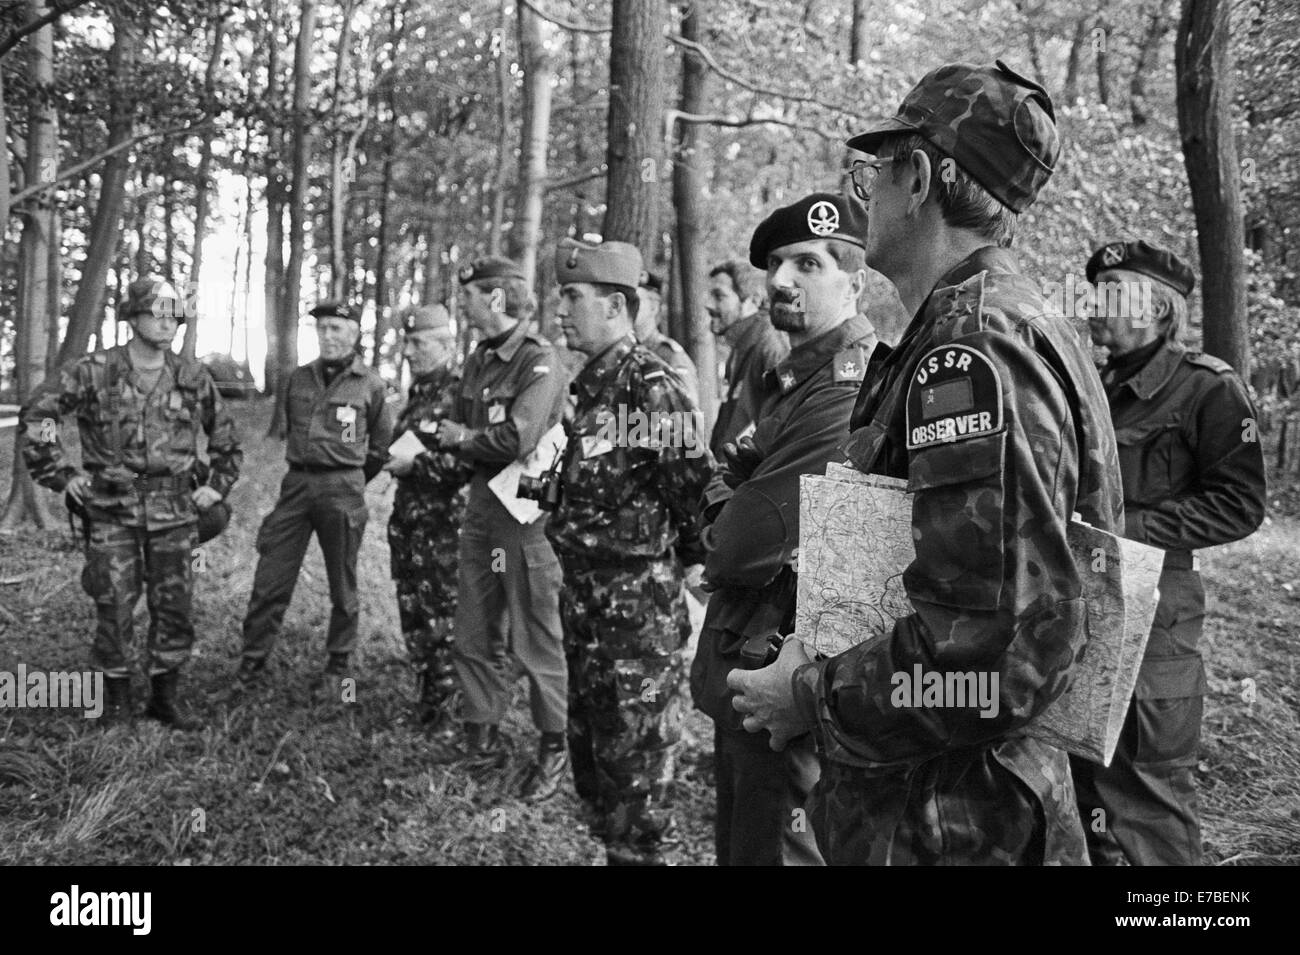 Soviet Armed Forces / Soviet Army (1946-1991) - Page 5 Nato-exercises-in-germany-military-observers-of-the-warsaw-pact-september-E7BENK